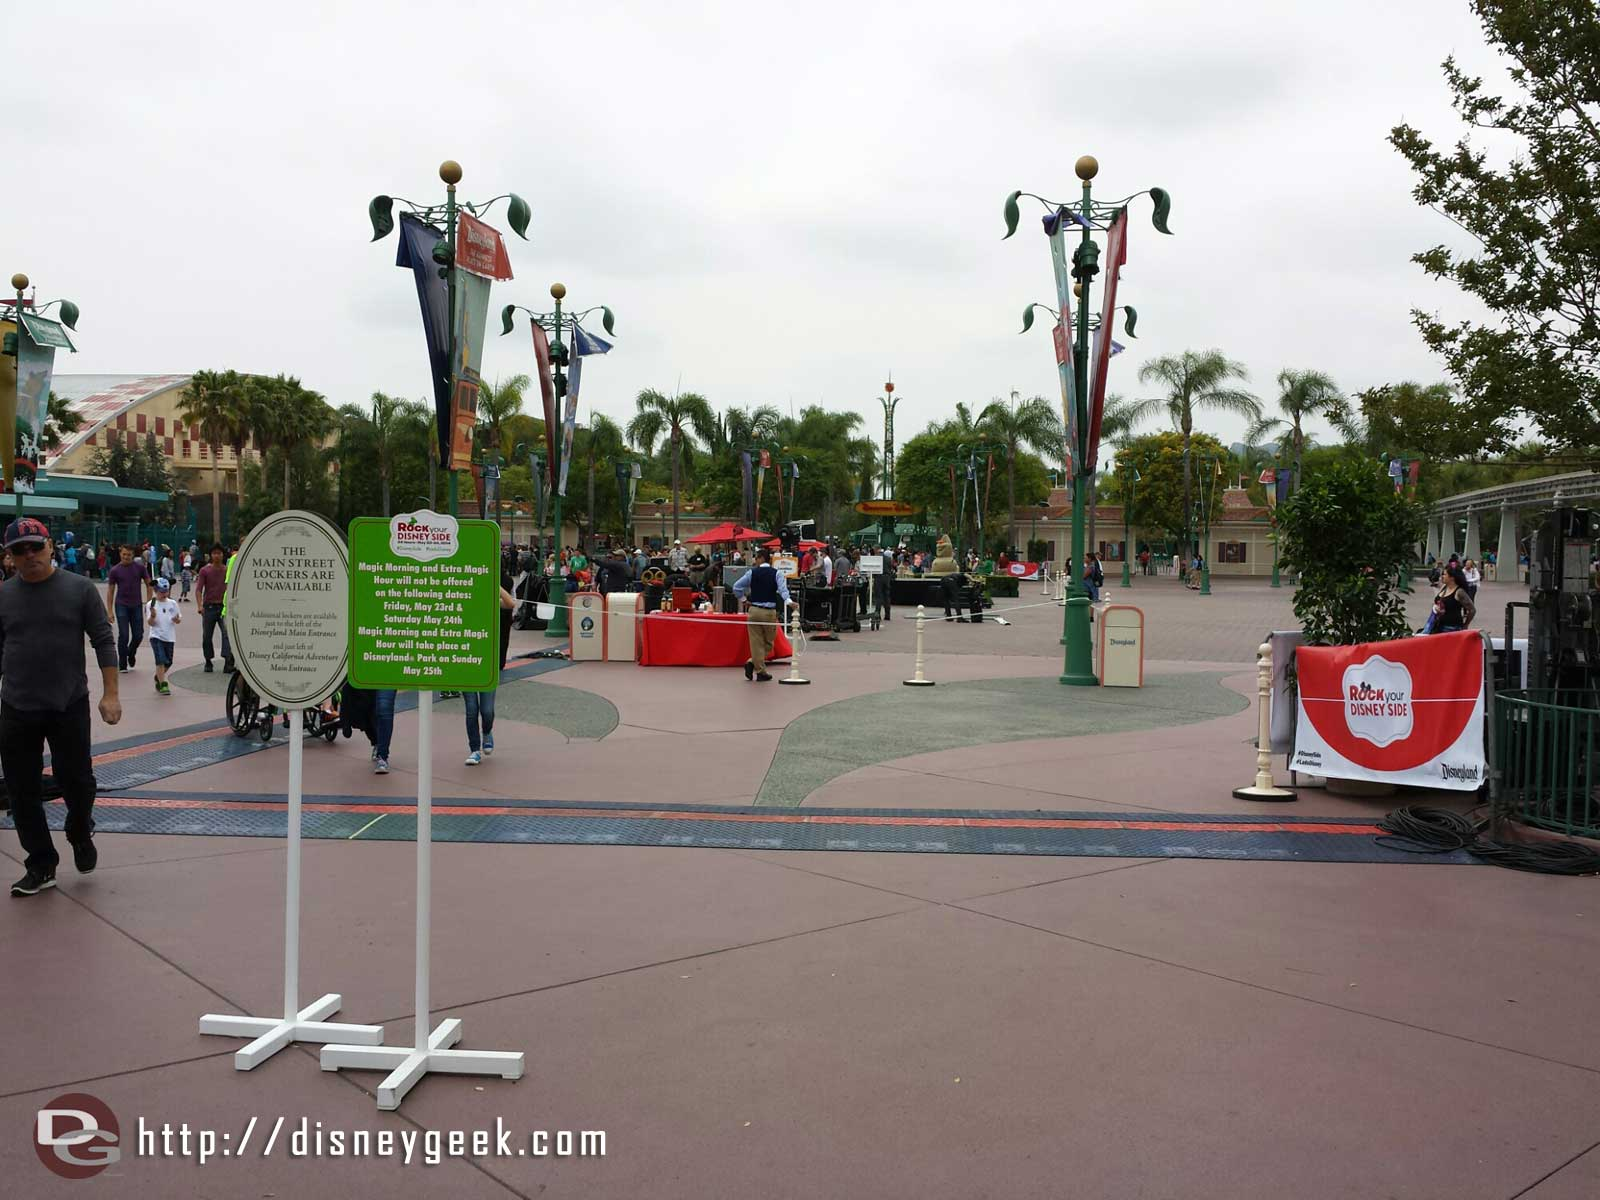 Just arrived at the #Disneyland Resort.  The Esplanade is being cleaned up after this mornings festivities